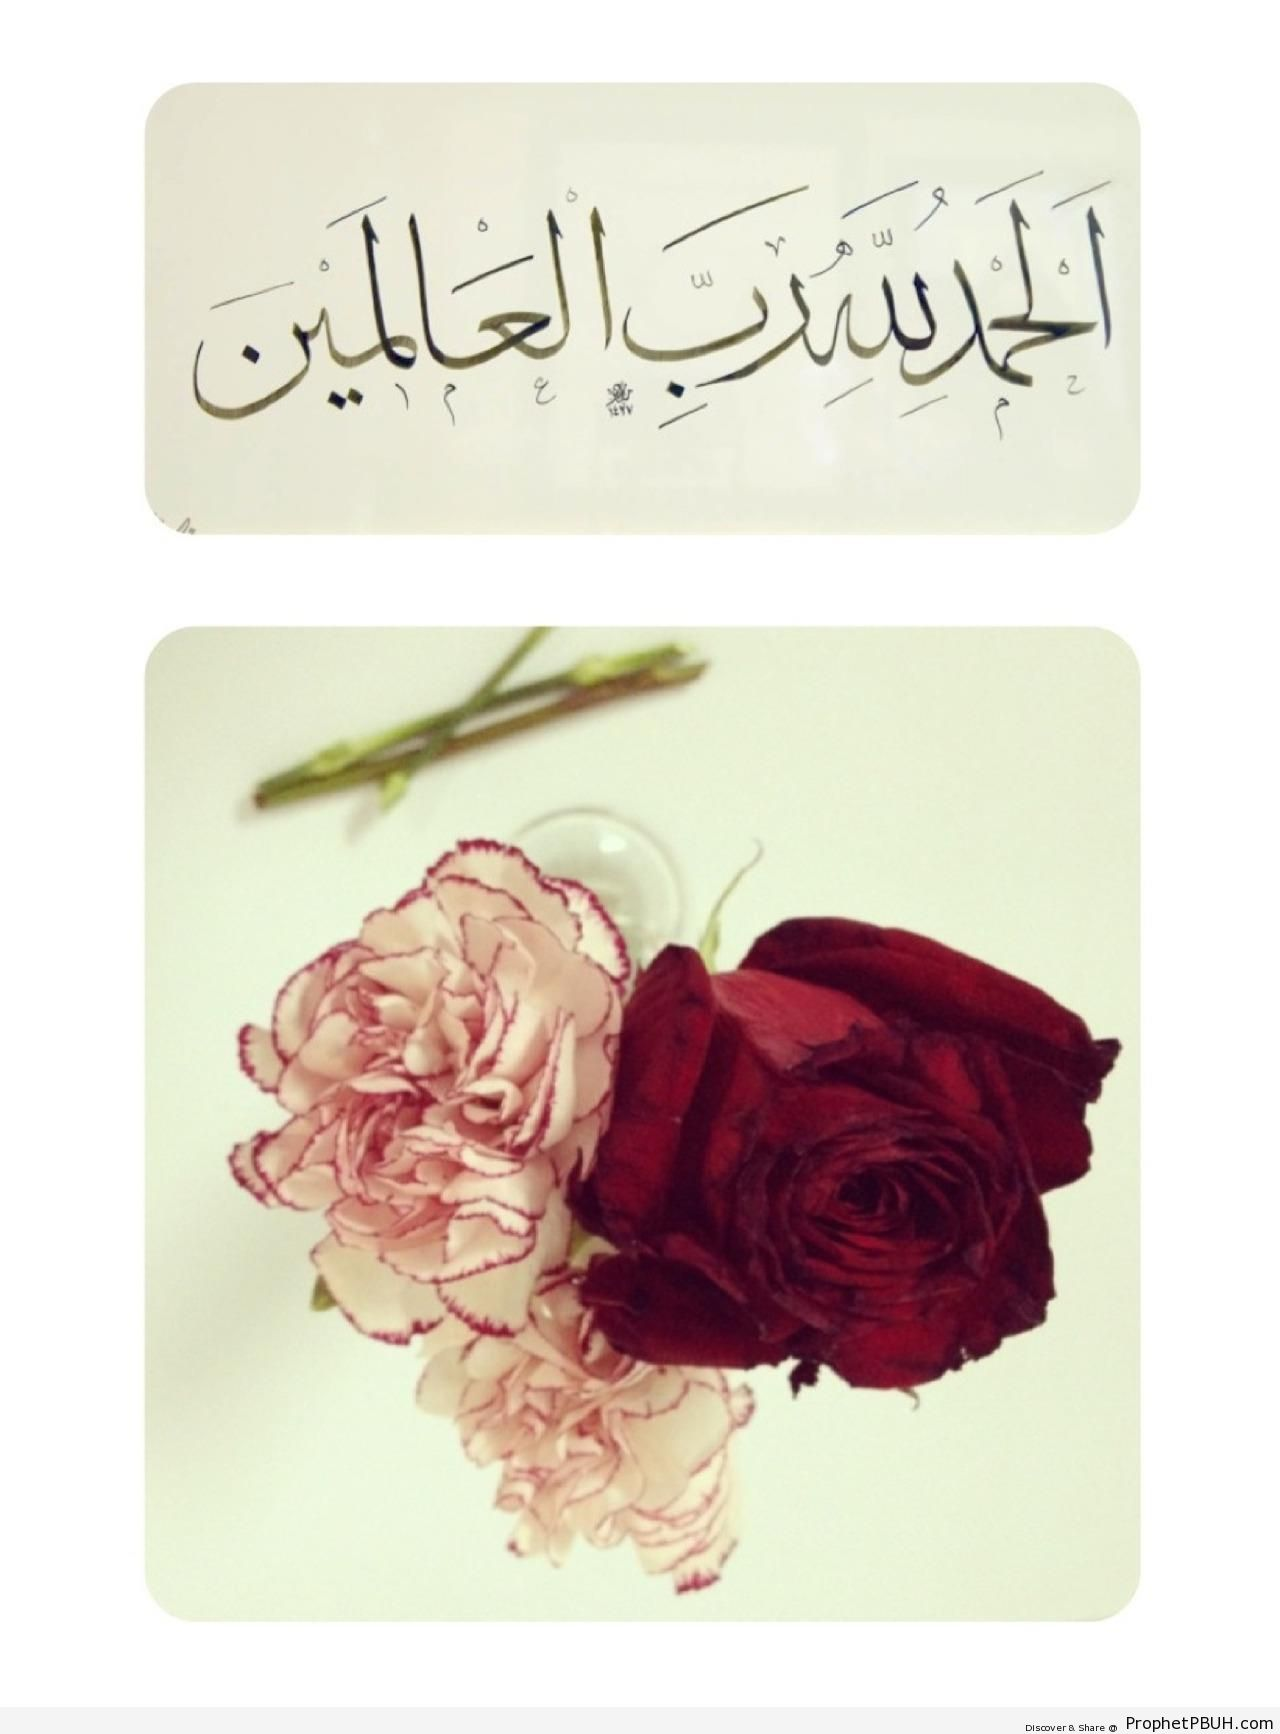 Alhamdulillah in Thuluth Calligraphy (Quran 1-2 - Surat al-Fatihah and Others) - Alhamdulillah Calligraphy and Typography